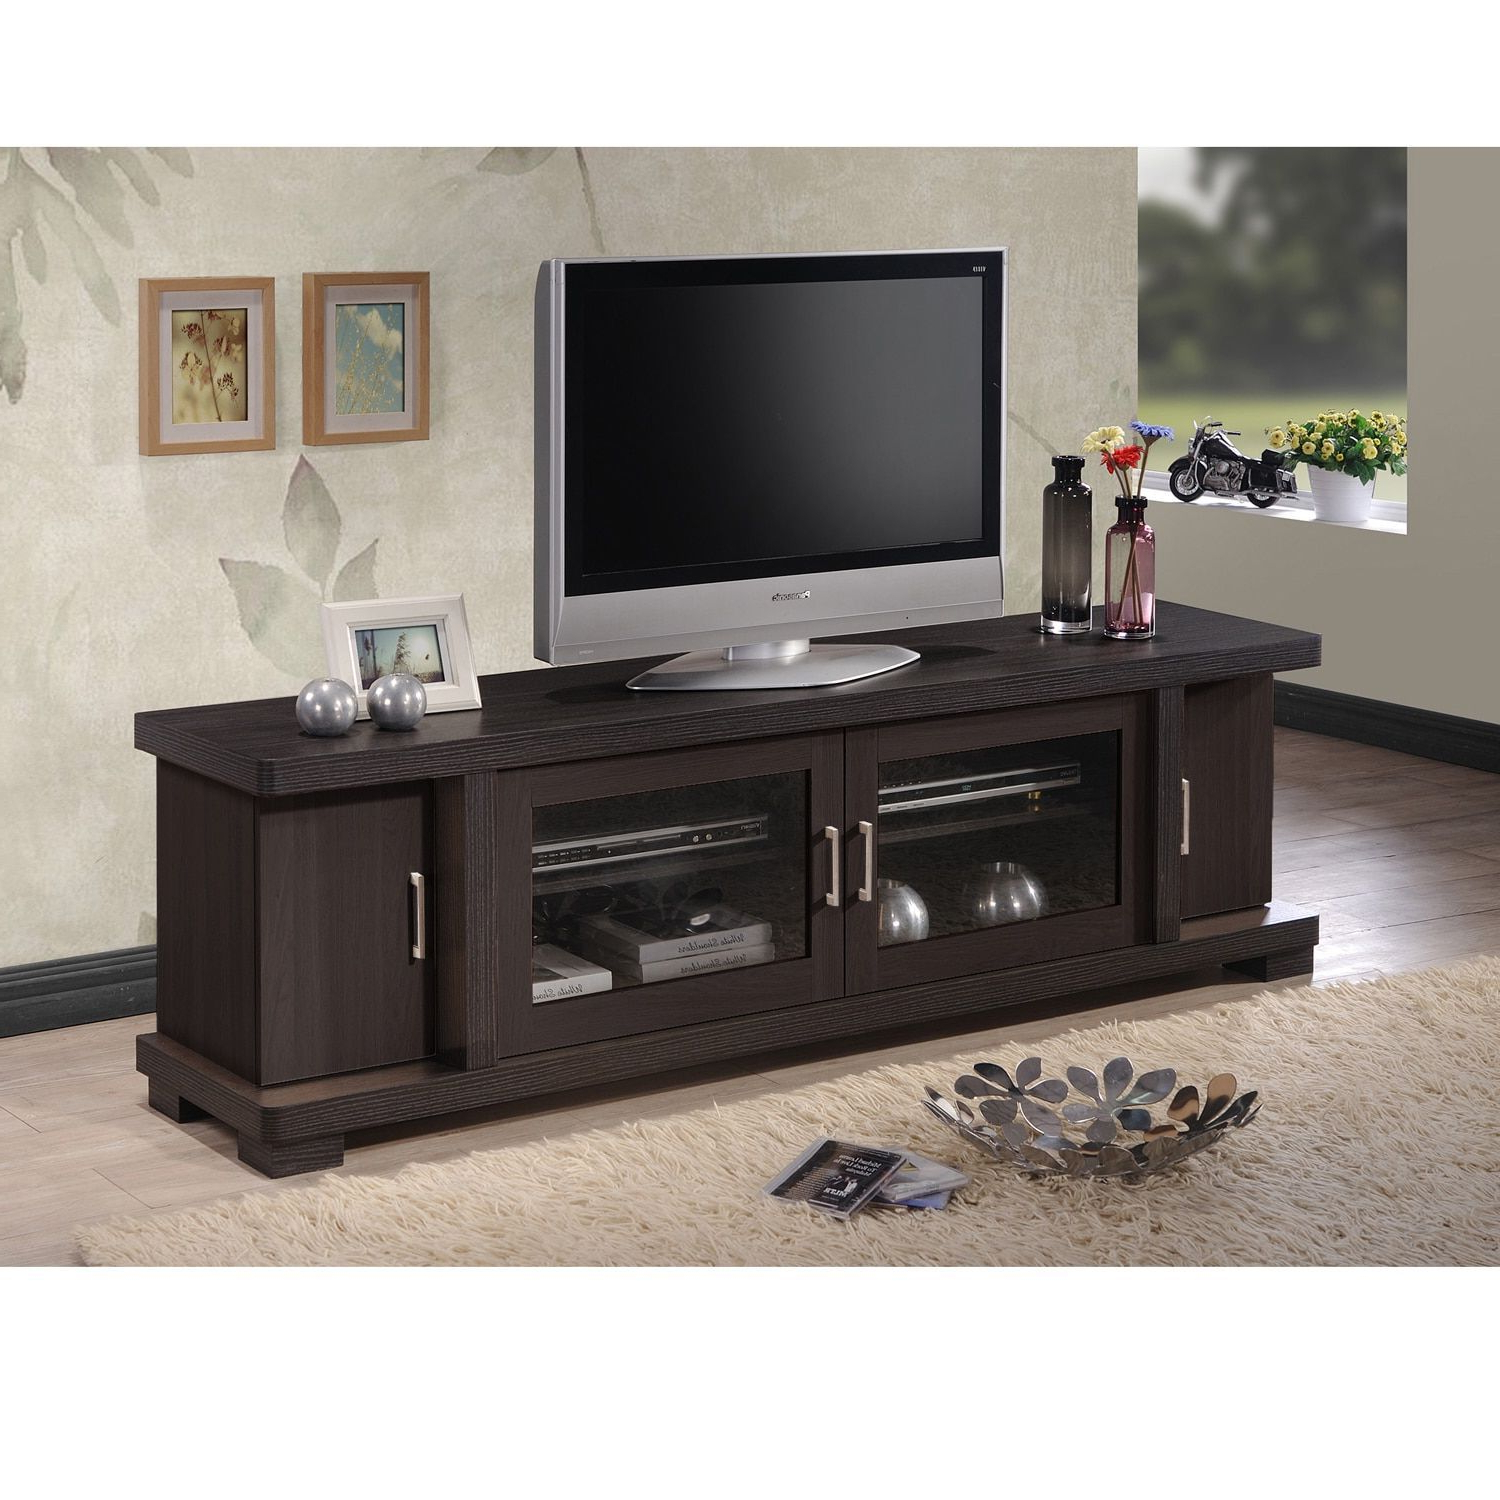 Most Recently Released Baxton Studio Vega Contemporary 70 Inch Dark Brown Wood Tv Cabinet Regarding Dark Wood Tv Cabinets (View 7 of 20)